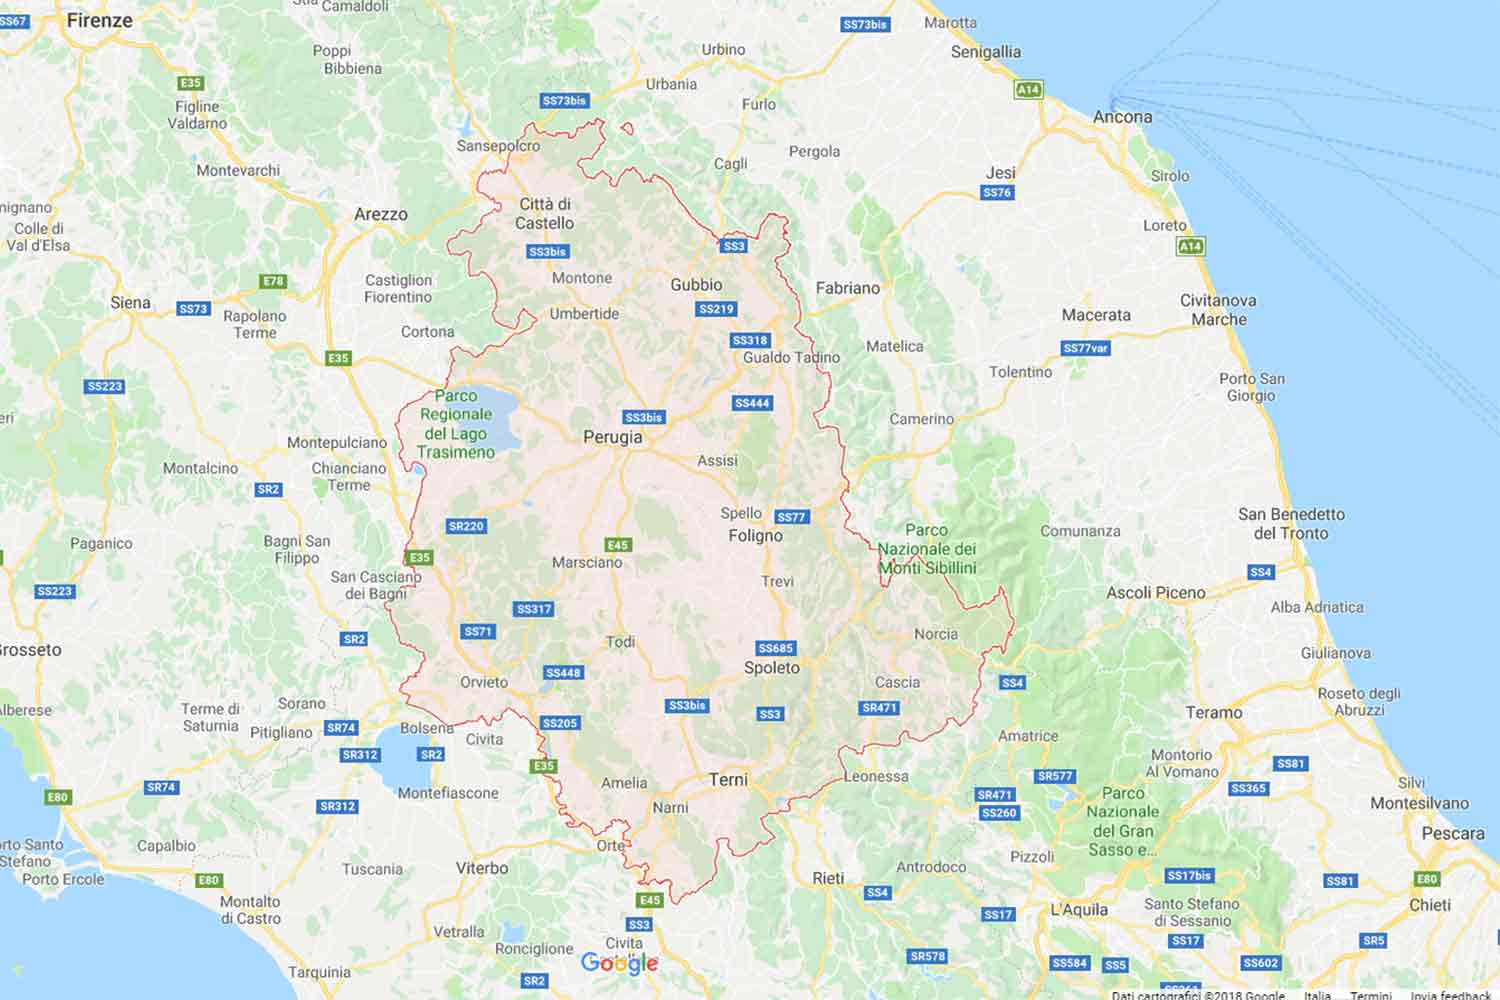 Umbria Preventivi Veloci google maps